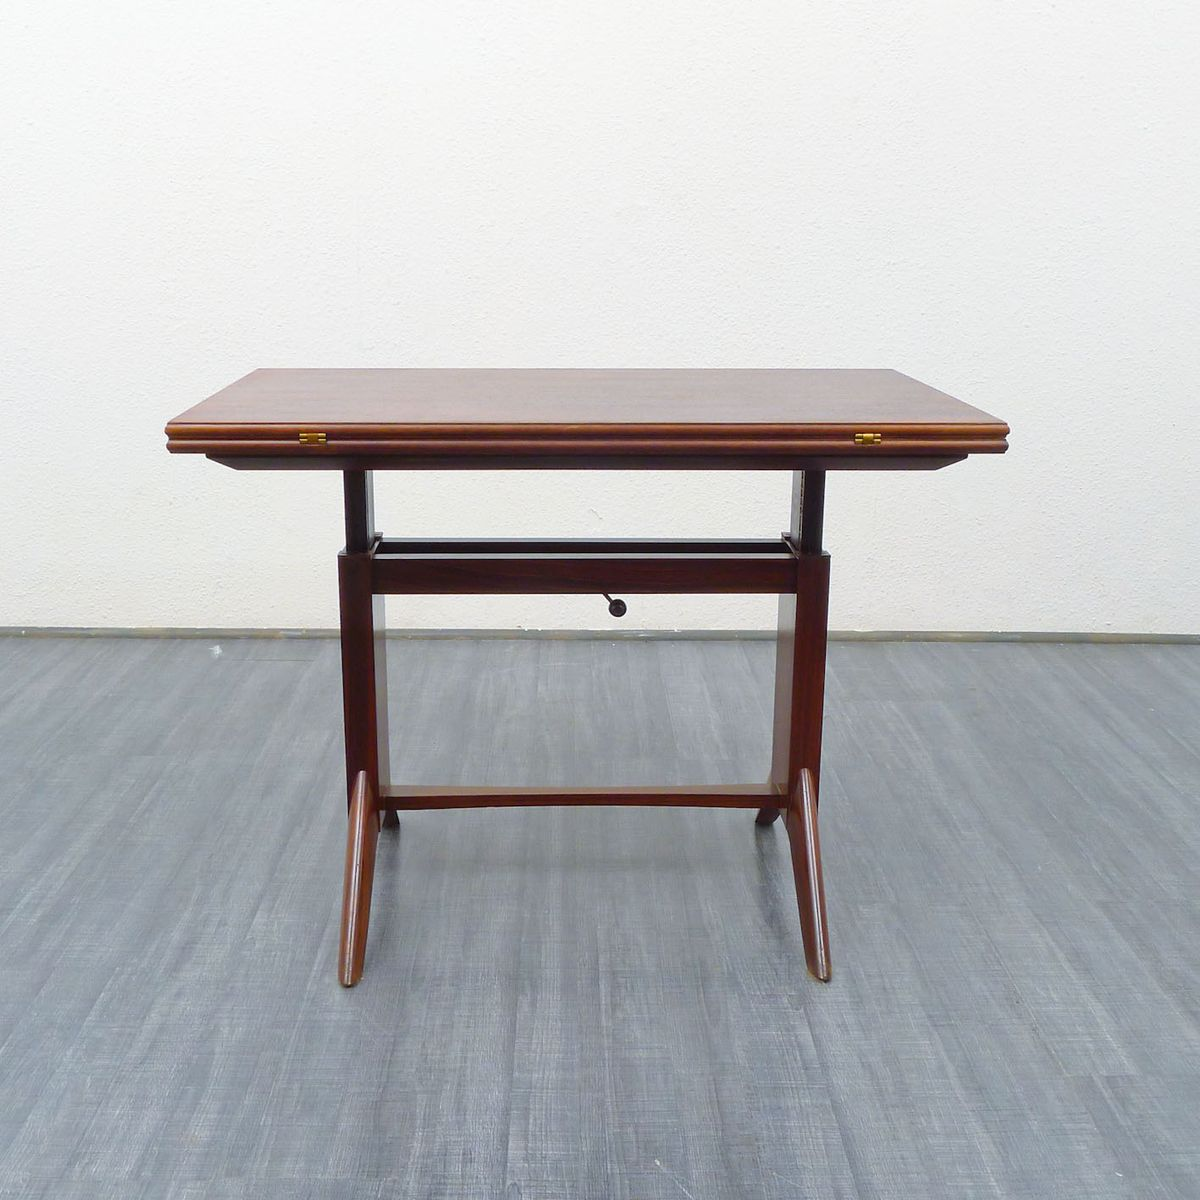 Rosewood Coffee Or Dining Table From Wilhelm Renz 1950s For Sale At Pamono